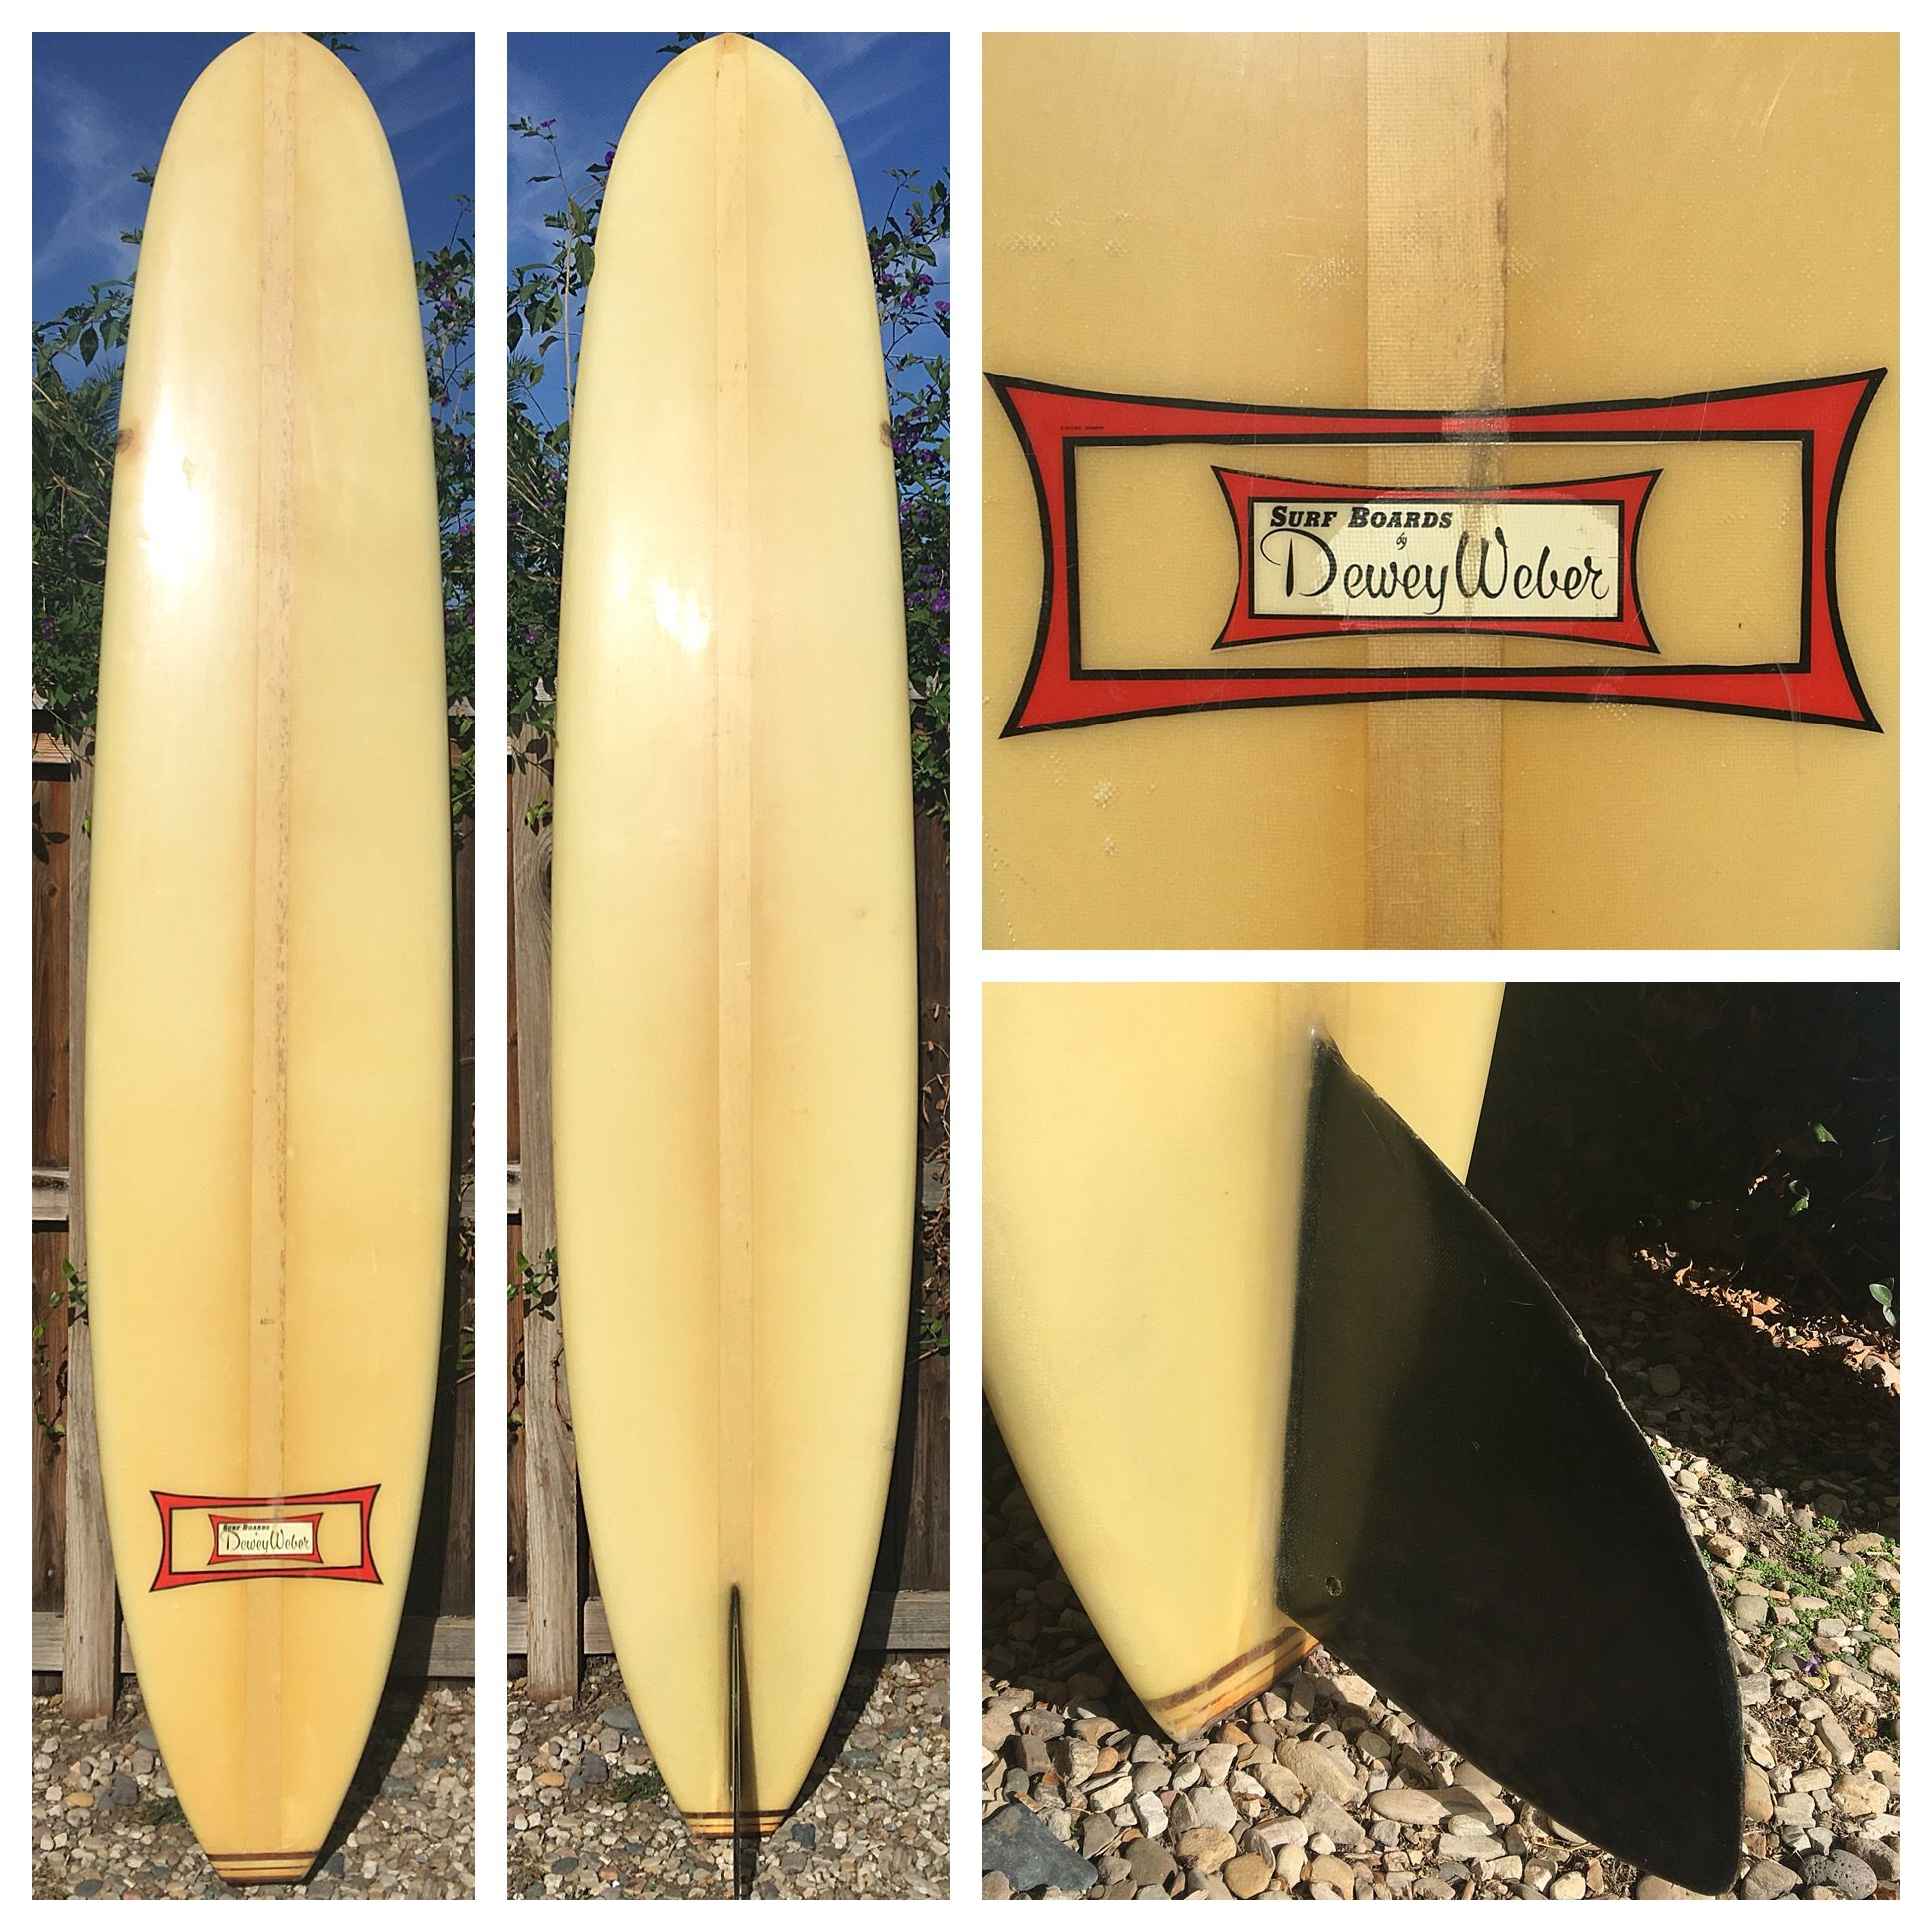 Pin by Chubbysurf on The Vintage Surfboards | Pinterest | Surfboards ...